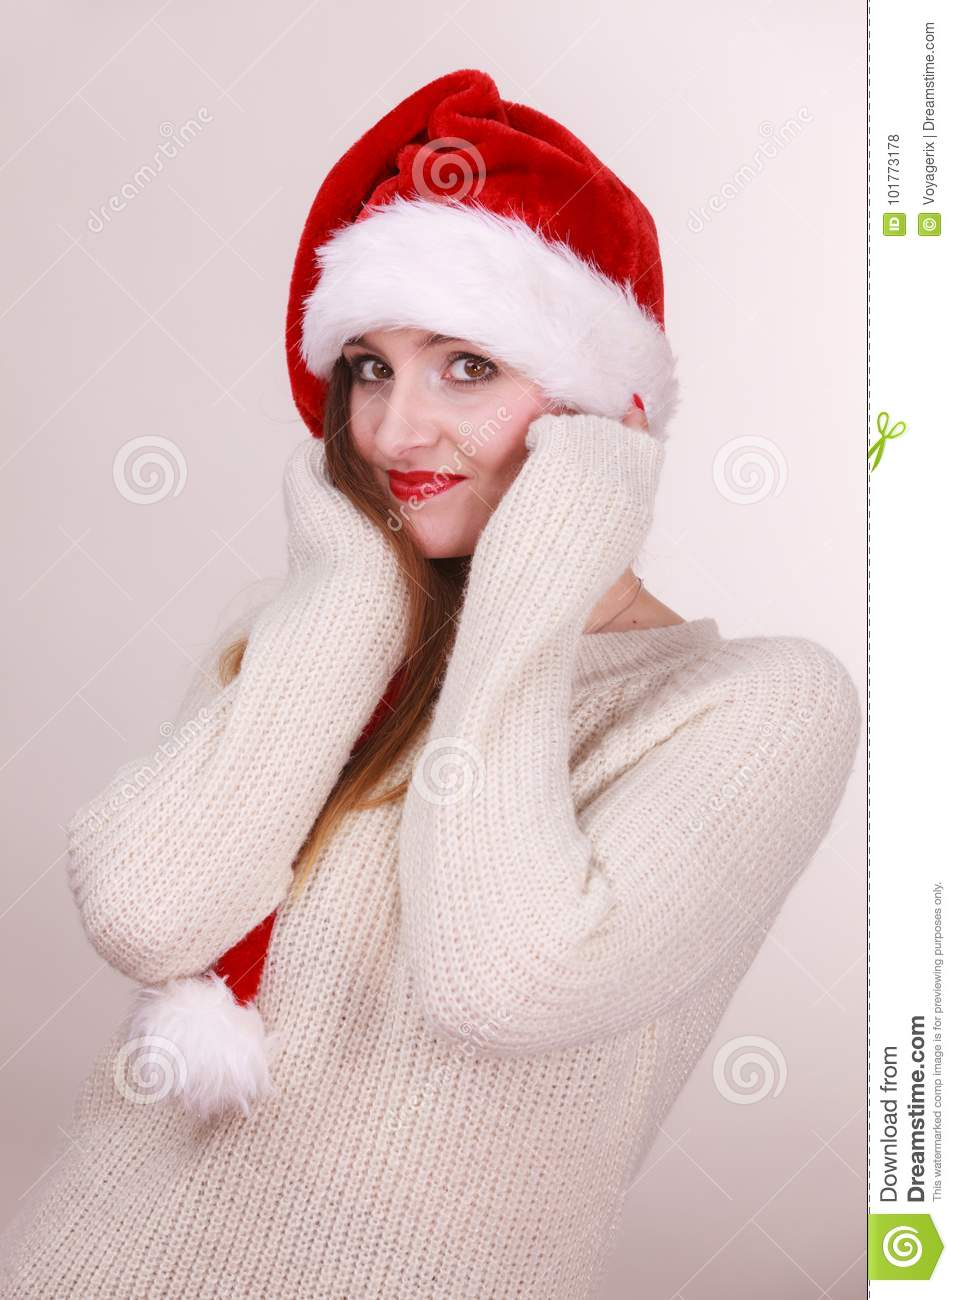 4efe53fc20e Christmas time. Young lady wearing santa claus hat and warm woolen sweater.  Celebration holiday concept.